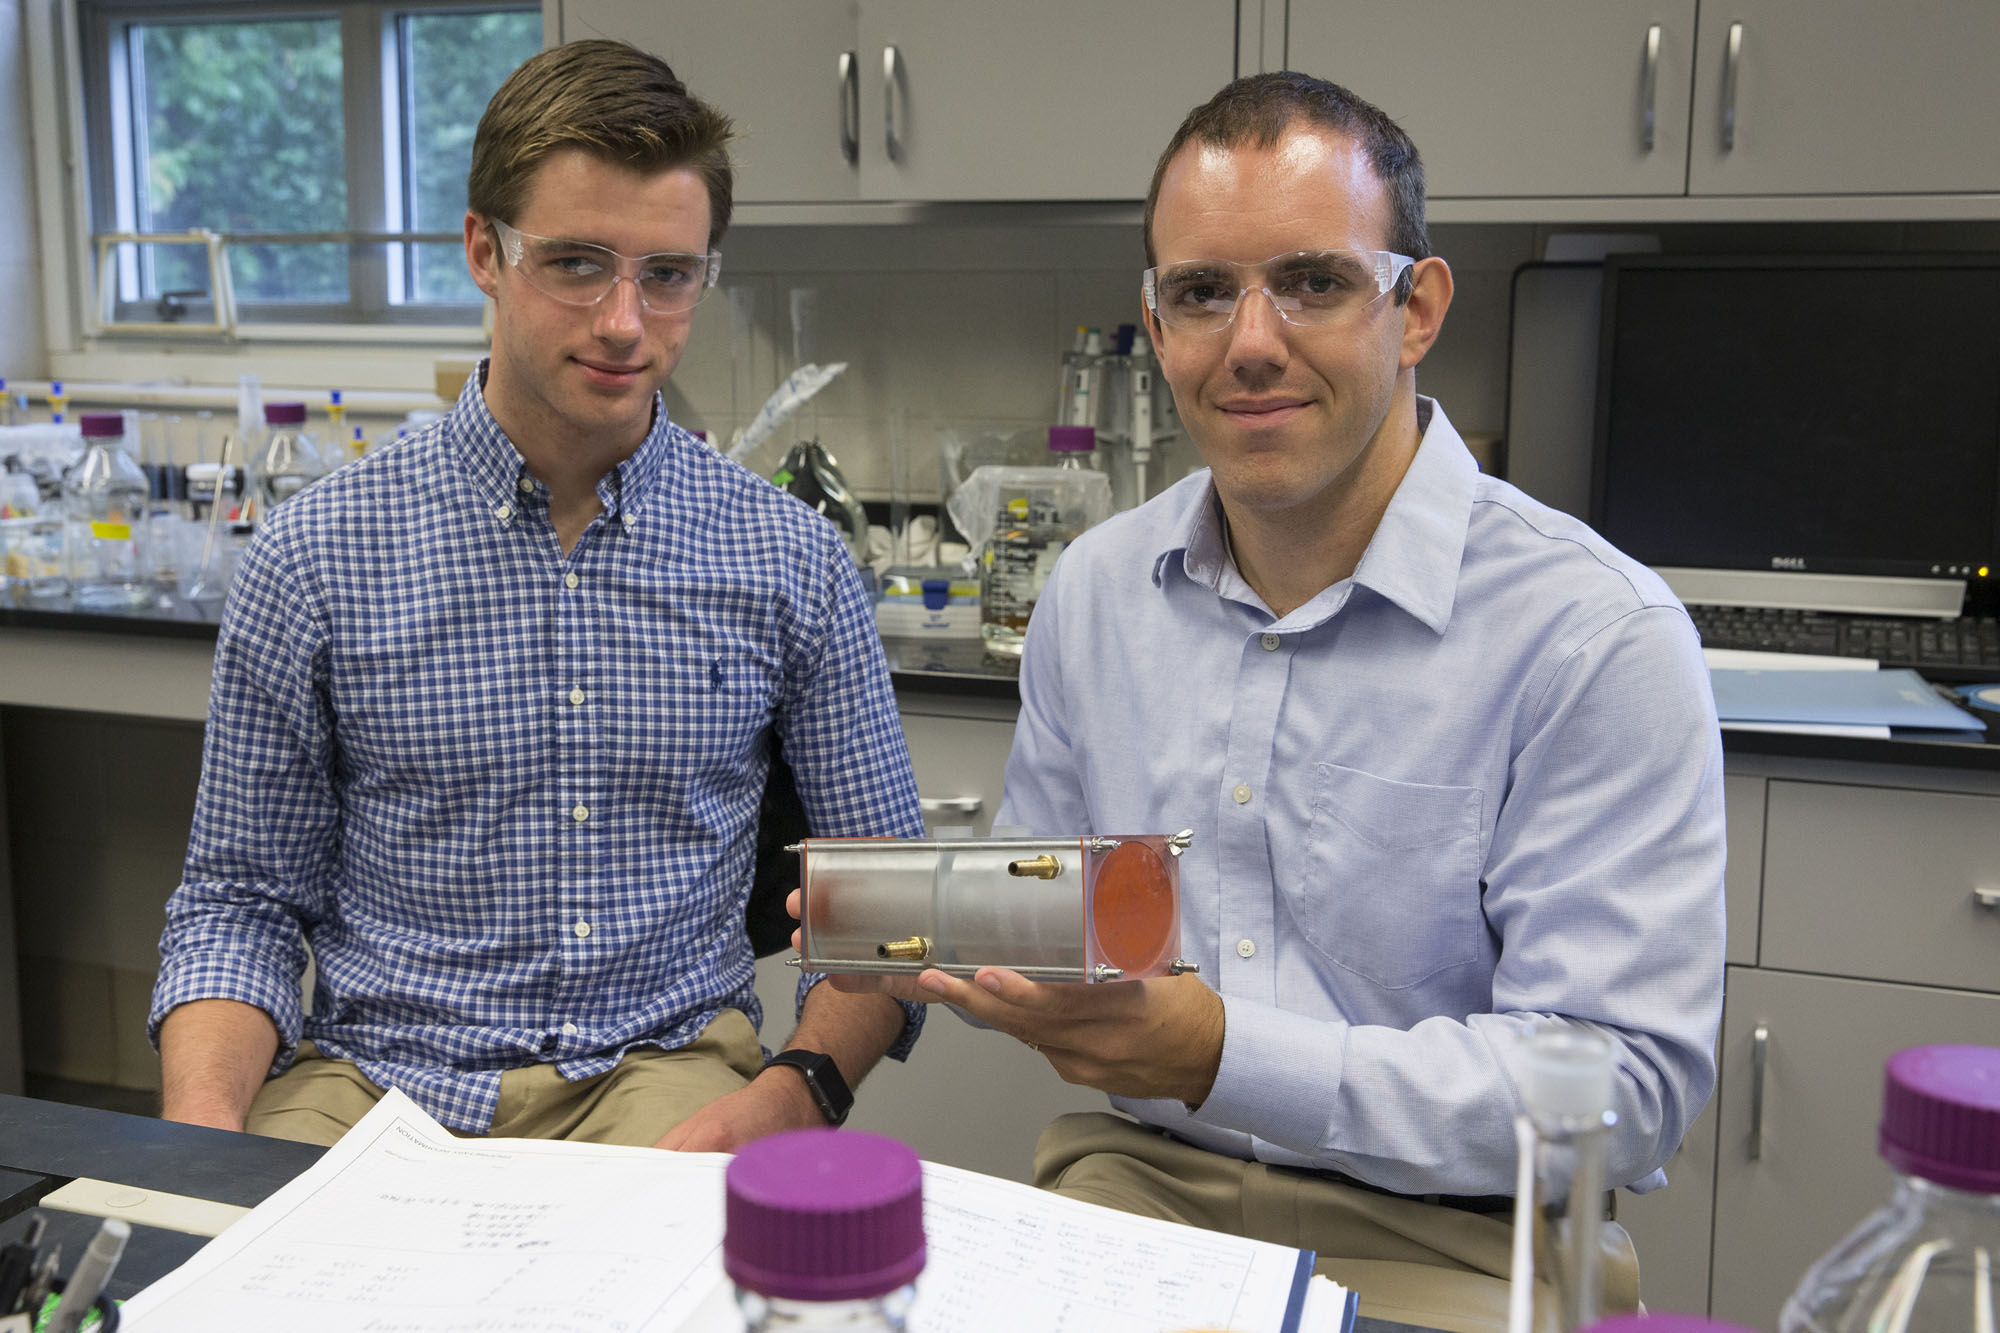 polymer membranes may simplify desalination reduce cost